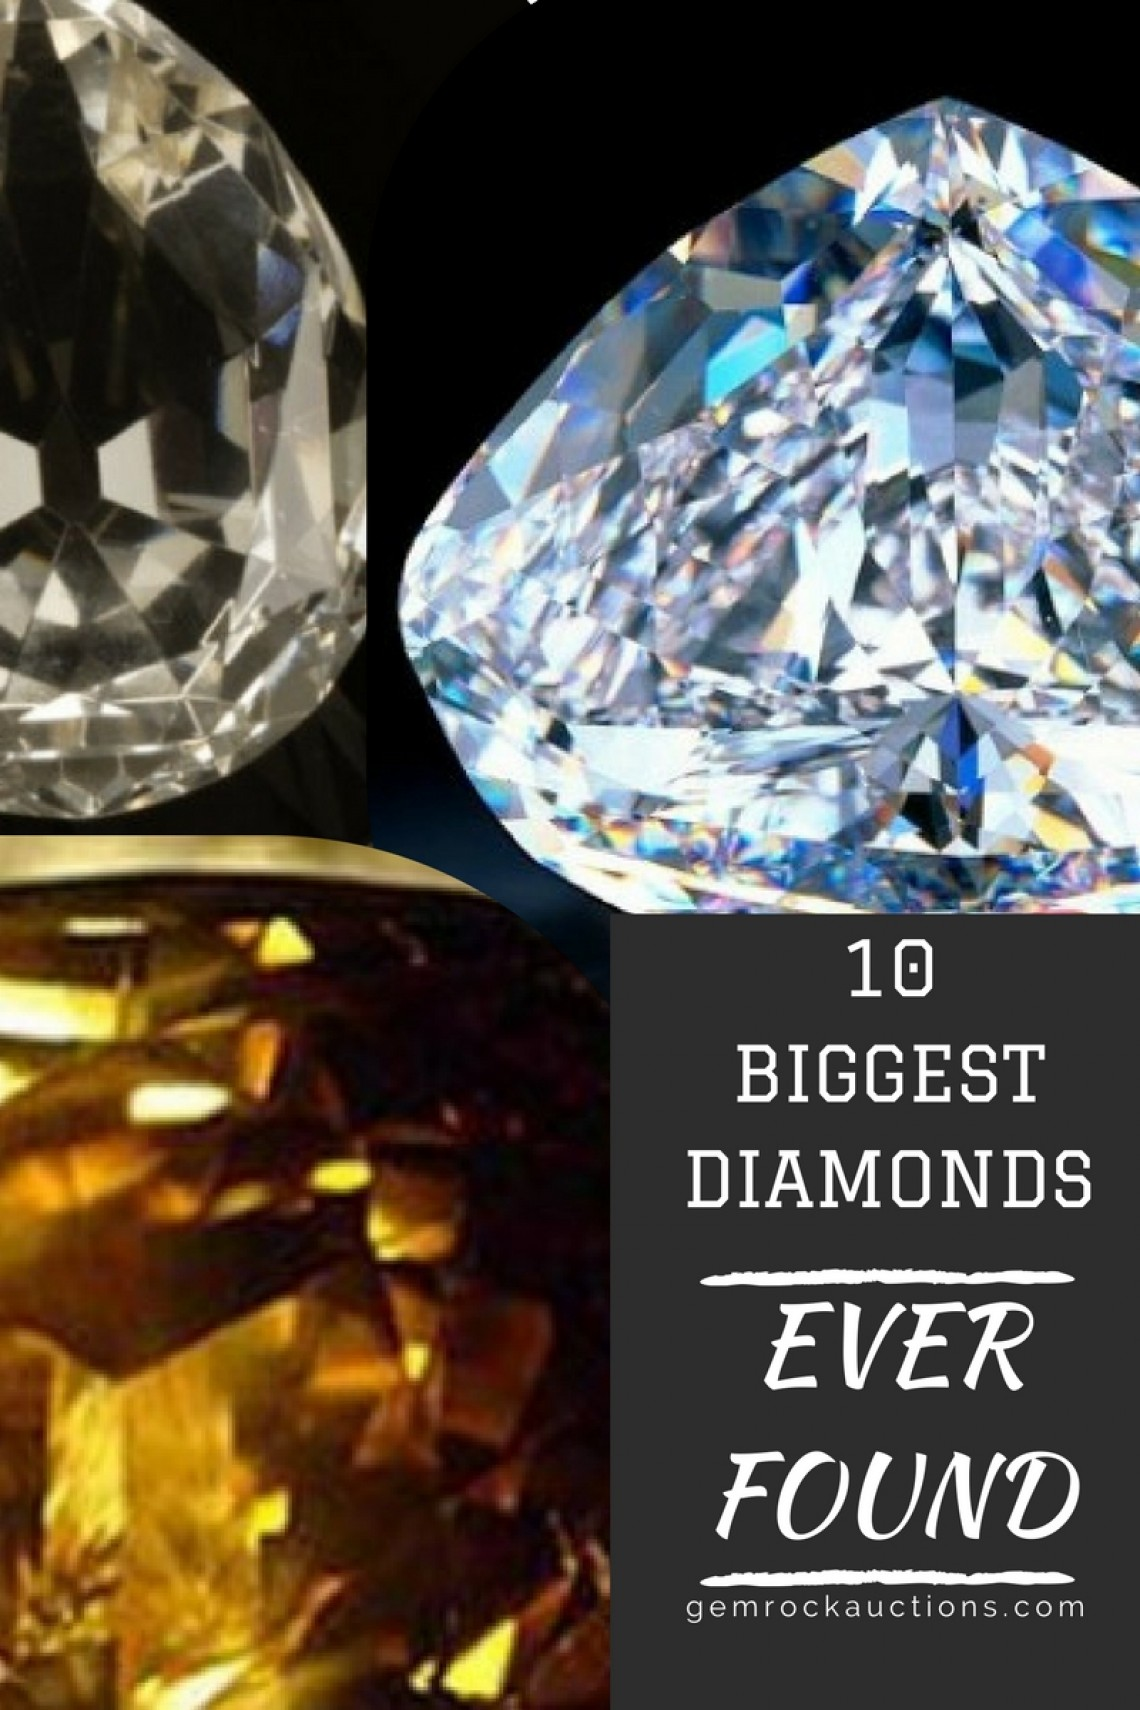 lowest african diamonds uncut sales headquarters seen to since at sale diamond beers from their southern are and canada business london dip de cycle rough africa in